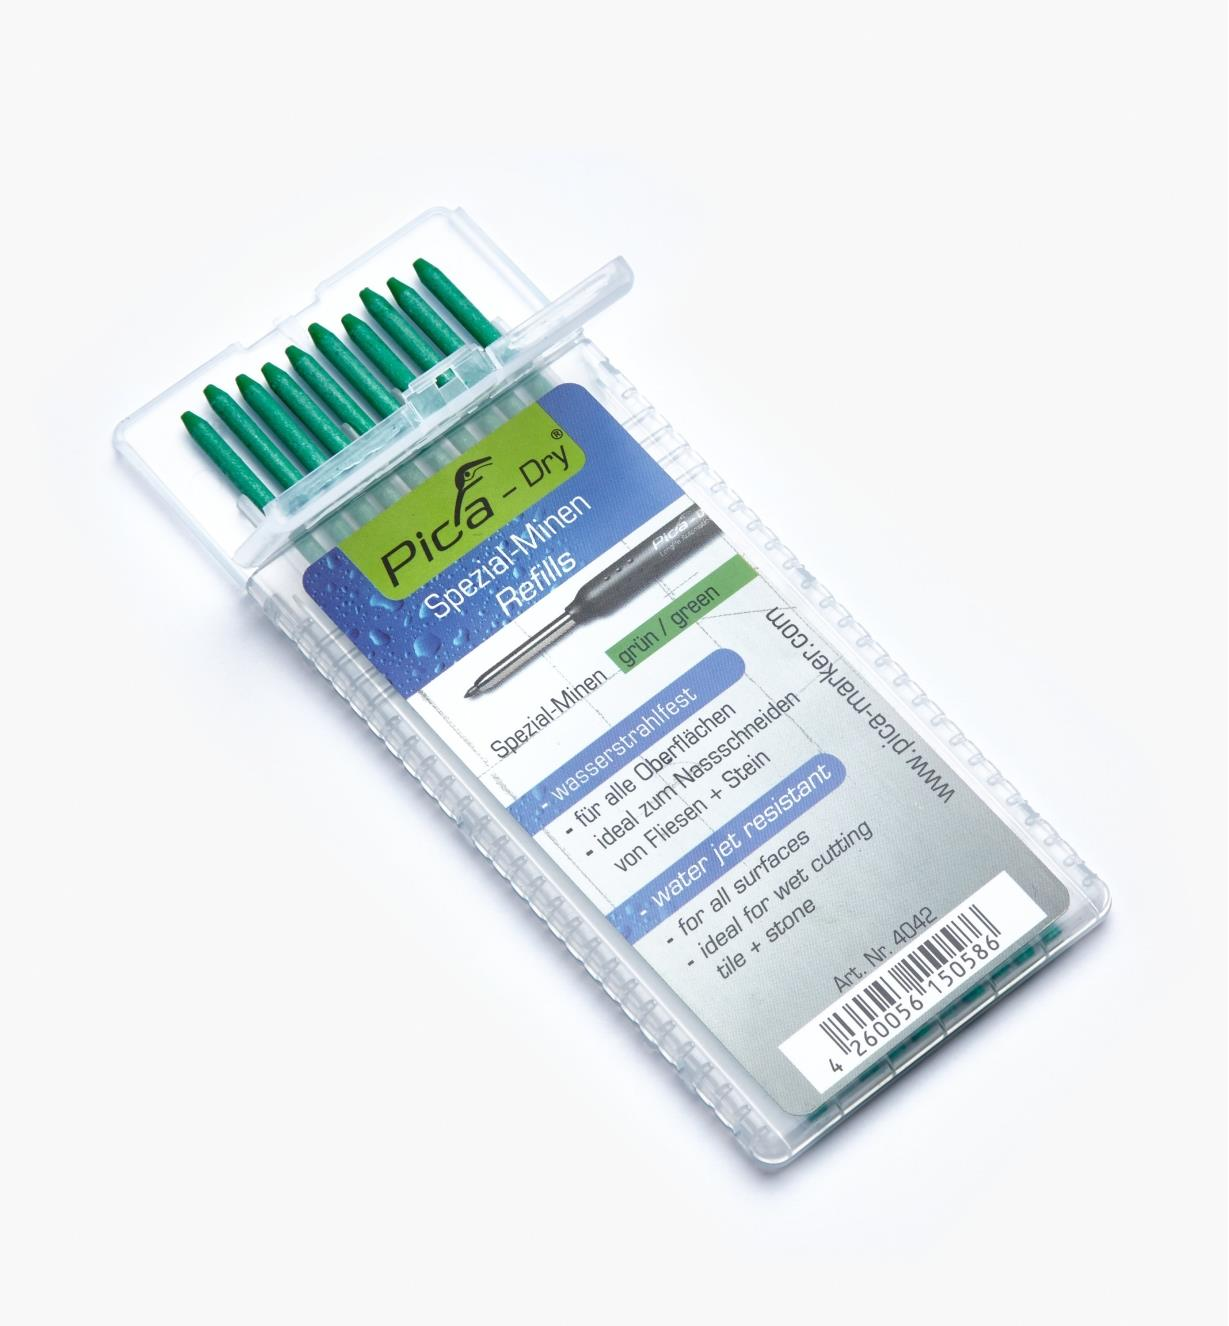 25K0422 - Pica-Dry Green Water-Resistant 2B Leads, pkg. of 10